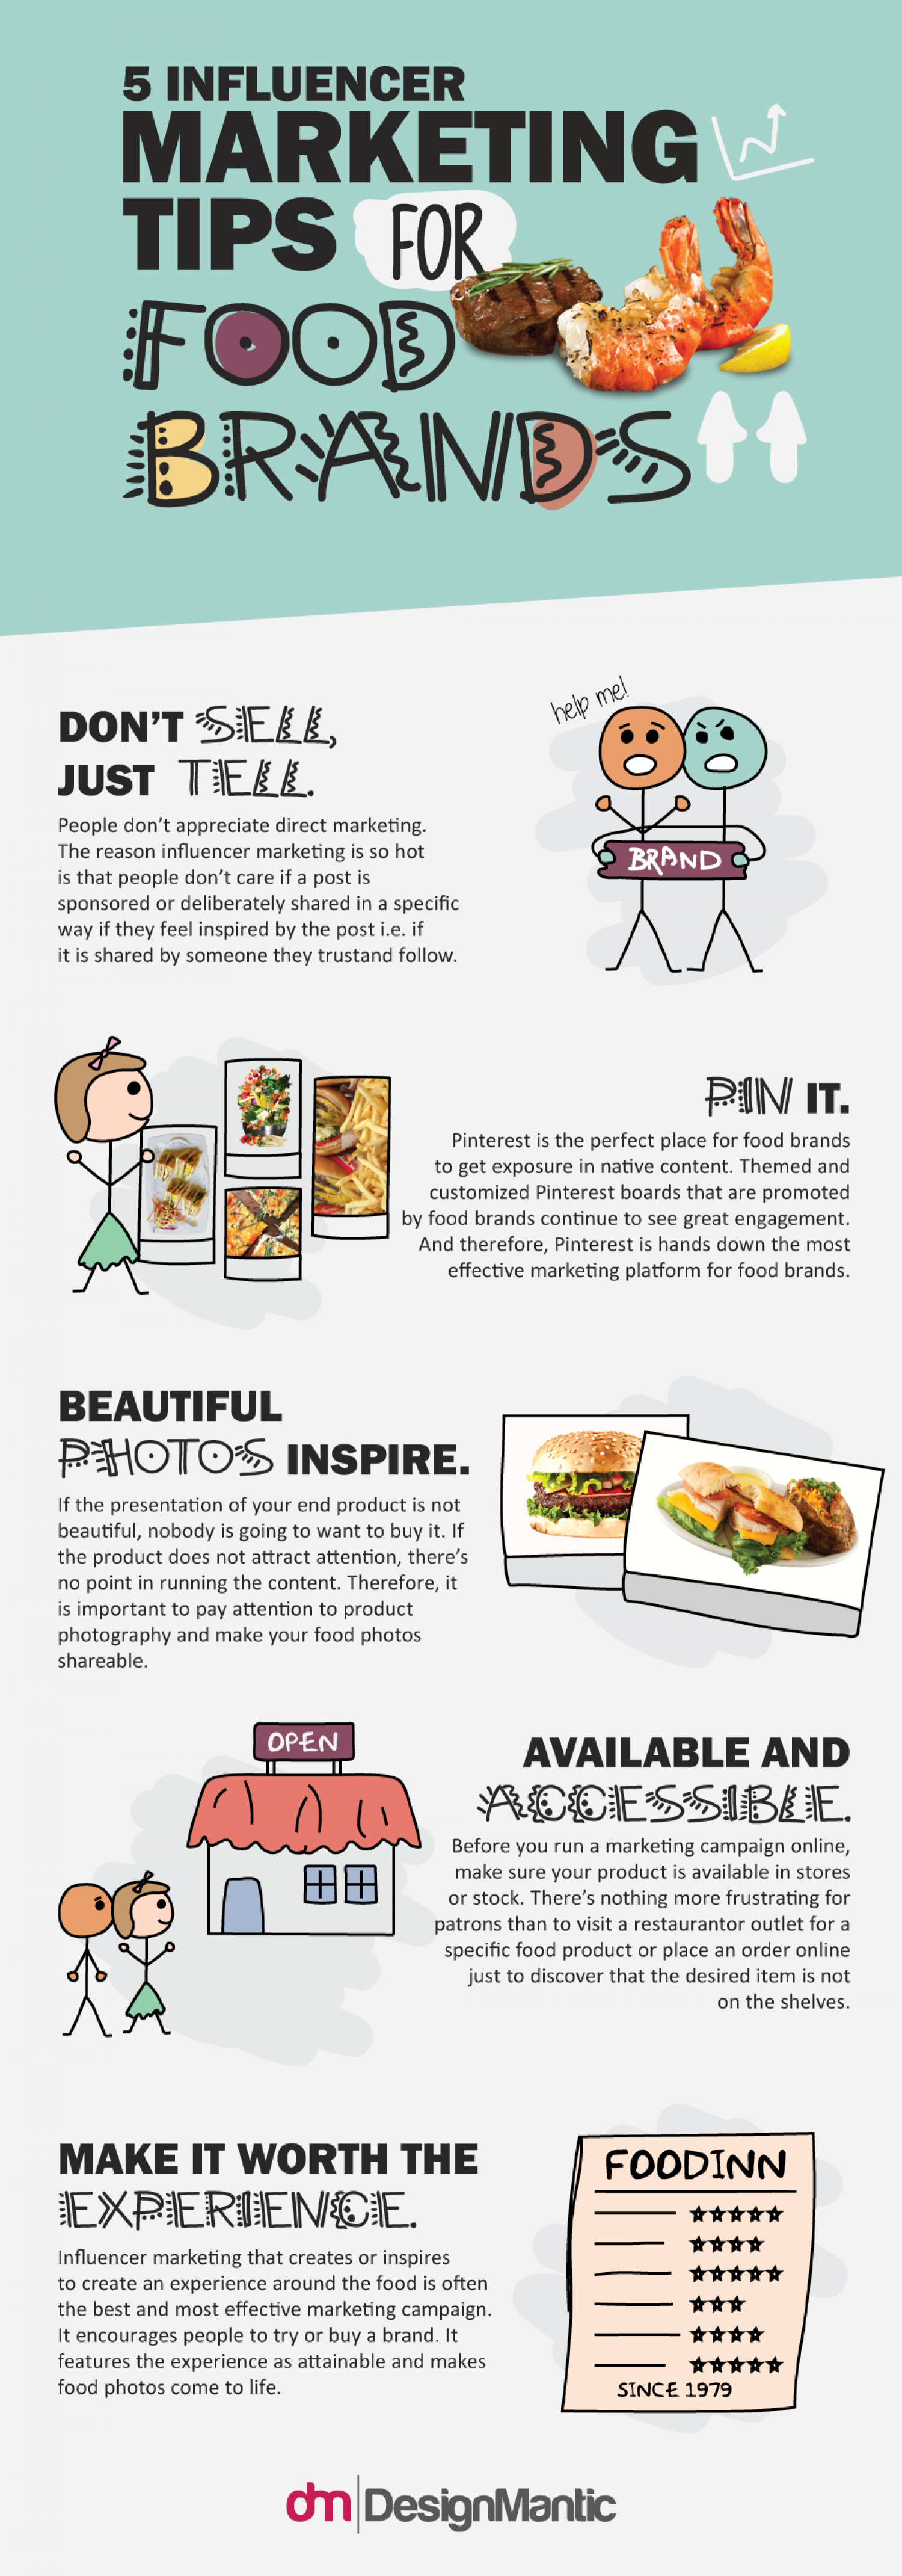 5 Influencer Marketing Tips For Food Brands Infographic